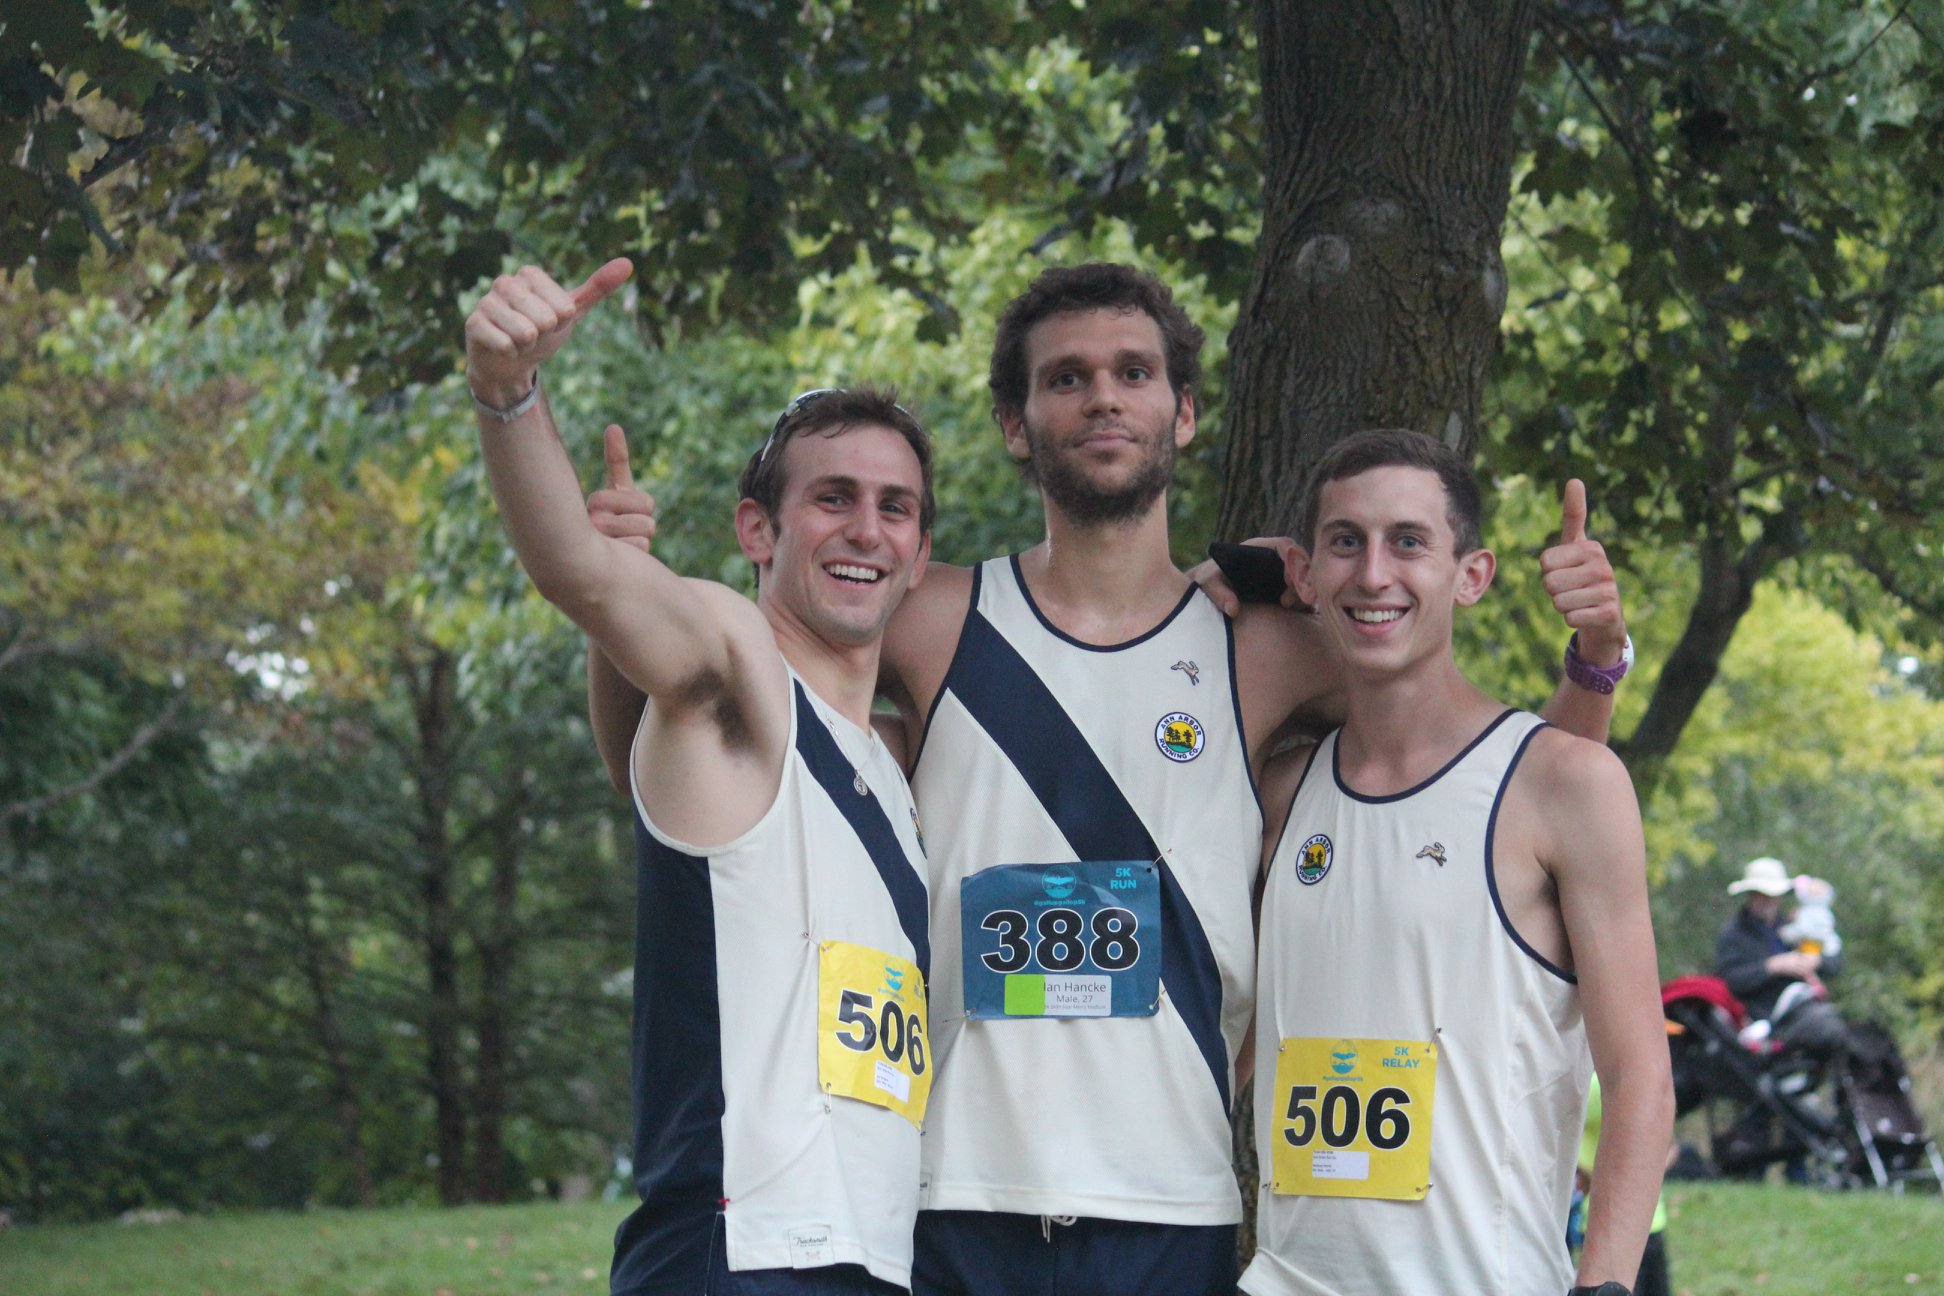 Ann Arbor Running Co. sets a very high bar for the inaugural relay with a blazing 14:29